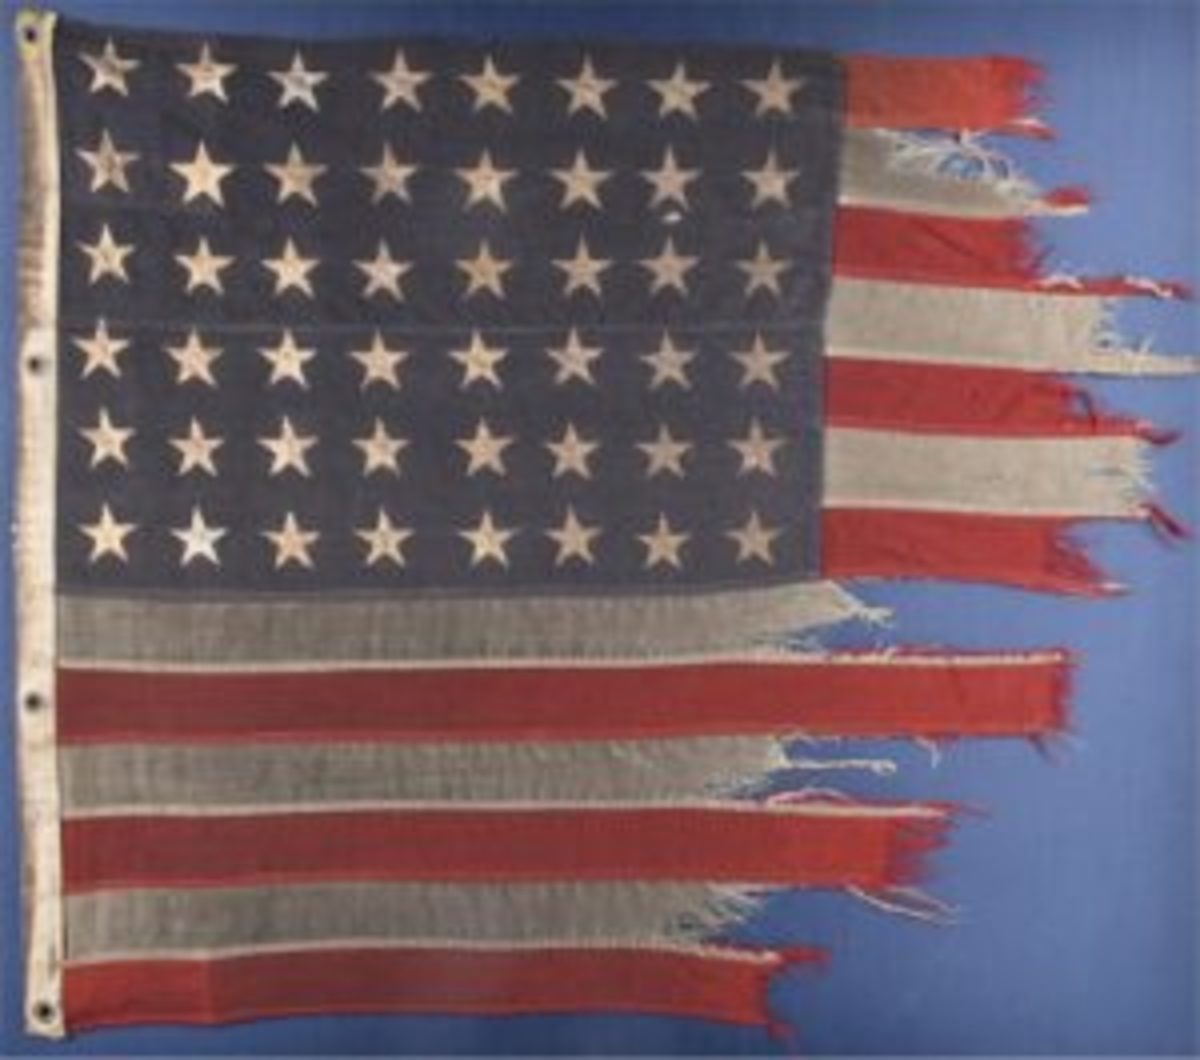 American flag from D-Day